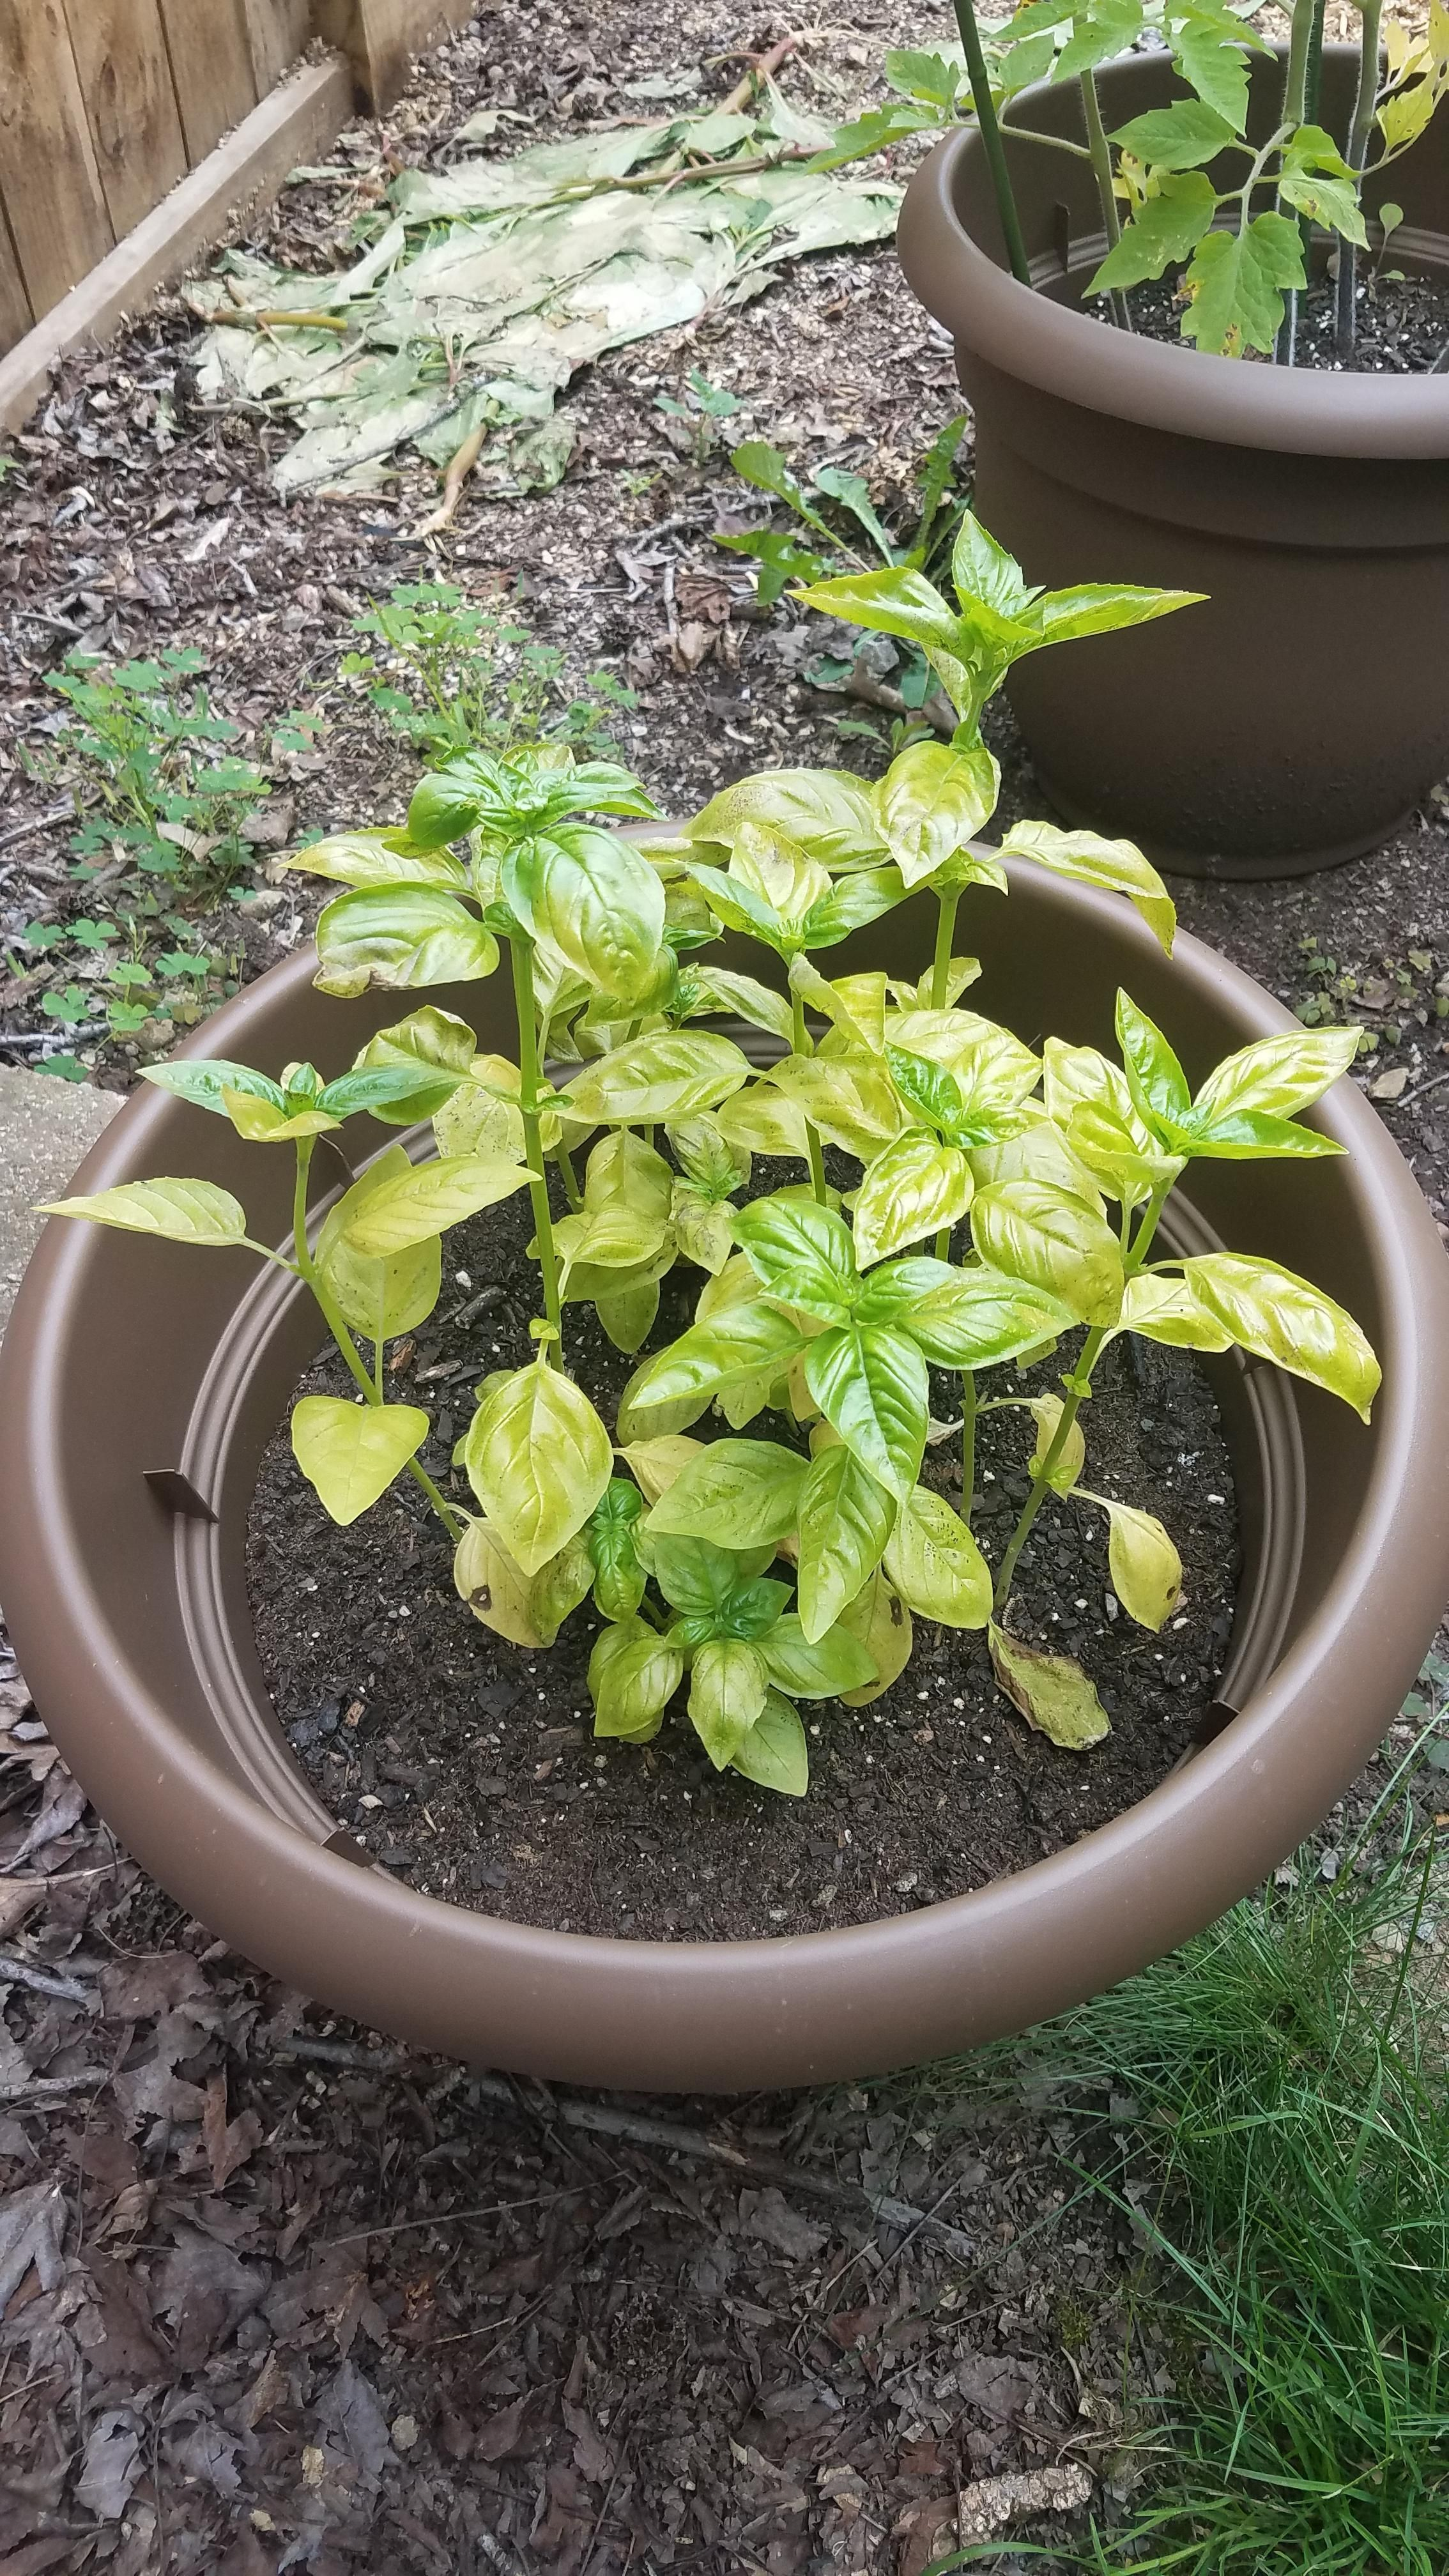 First Time Gardener Looks Like My Basil Is Going Bad! #gardening .